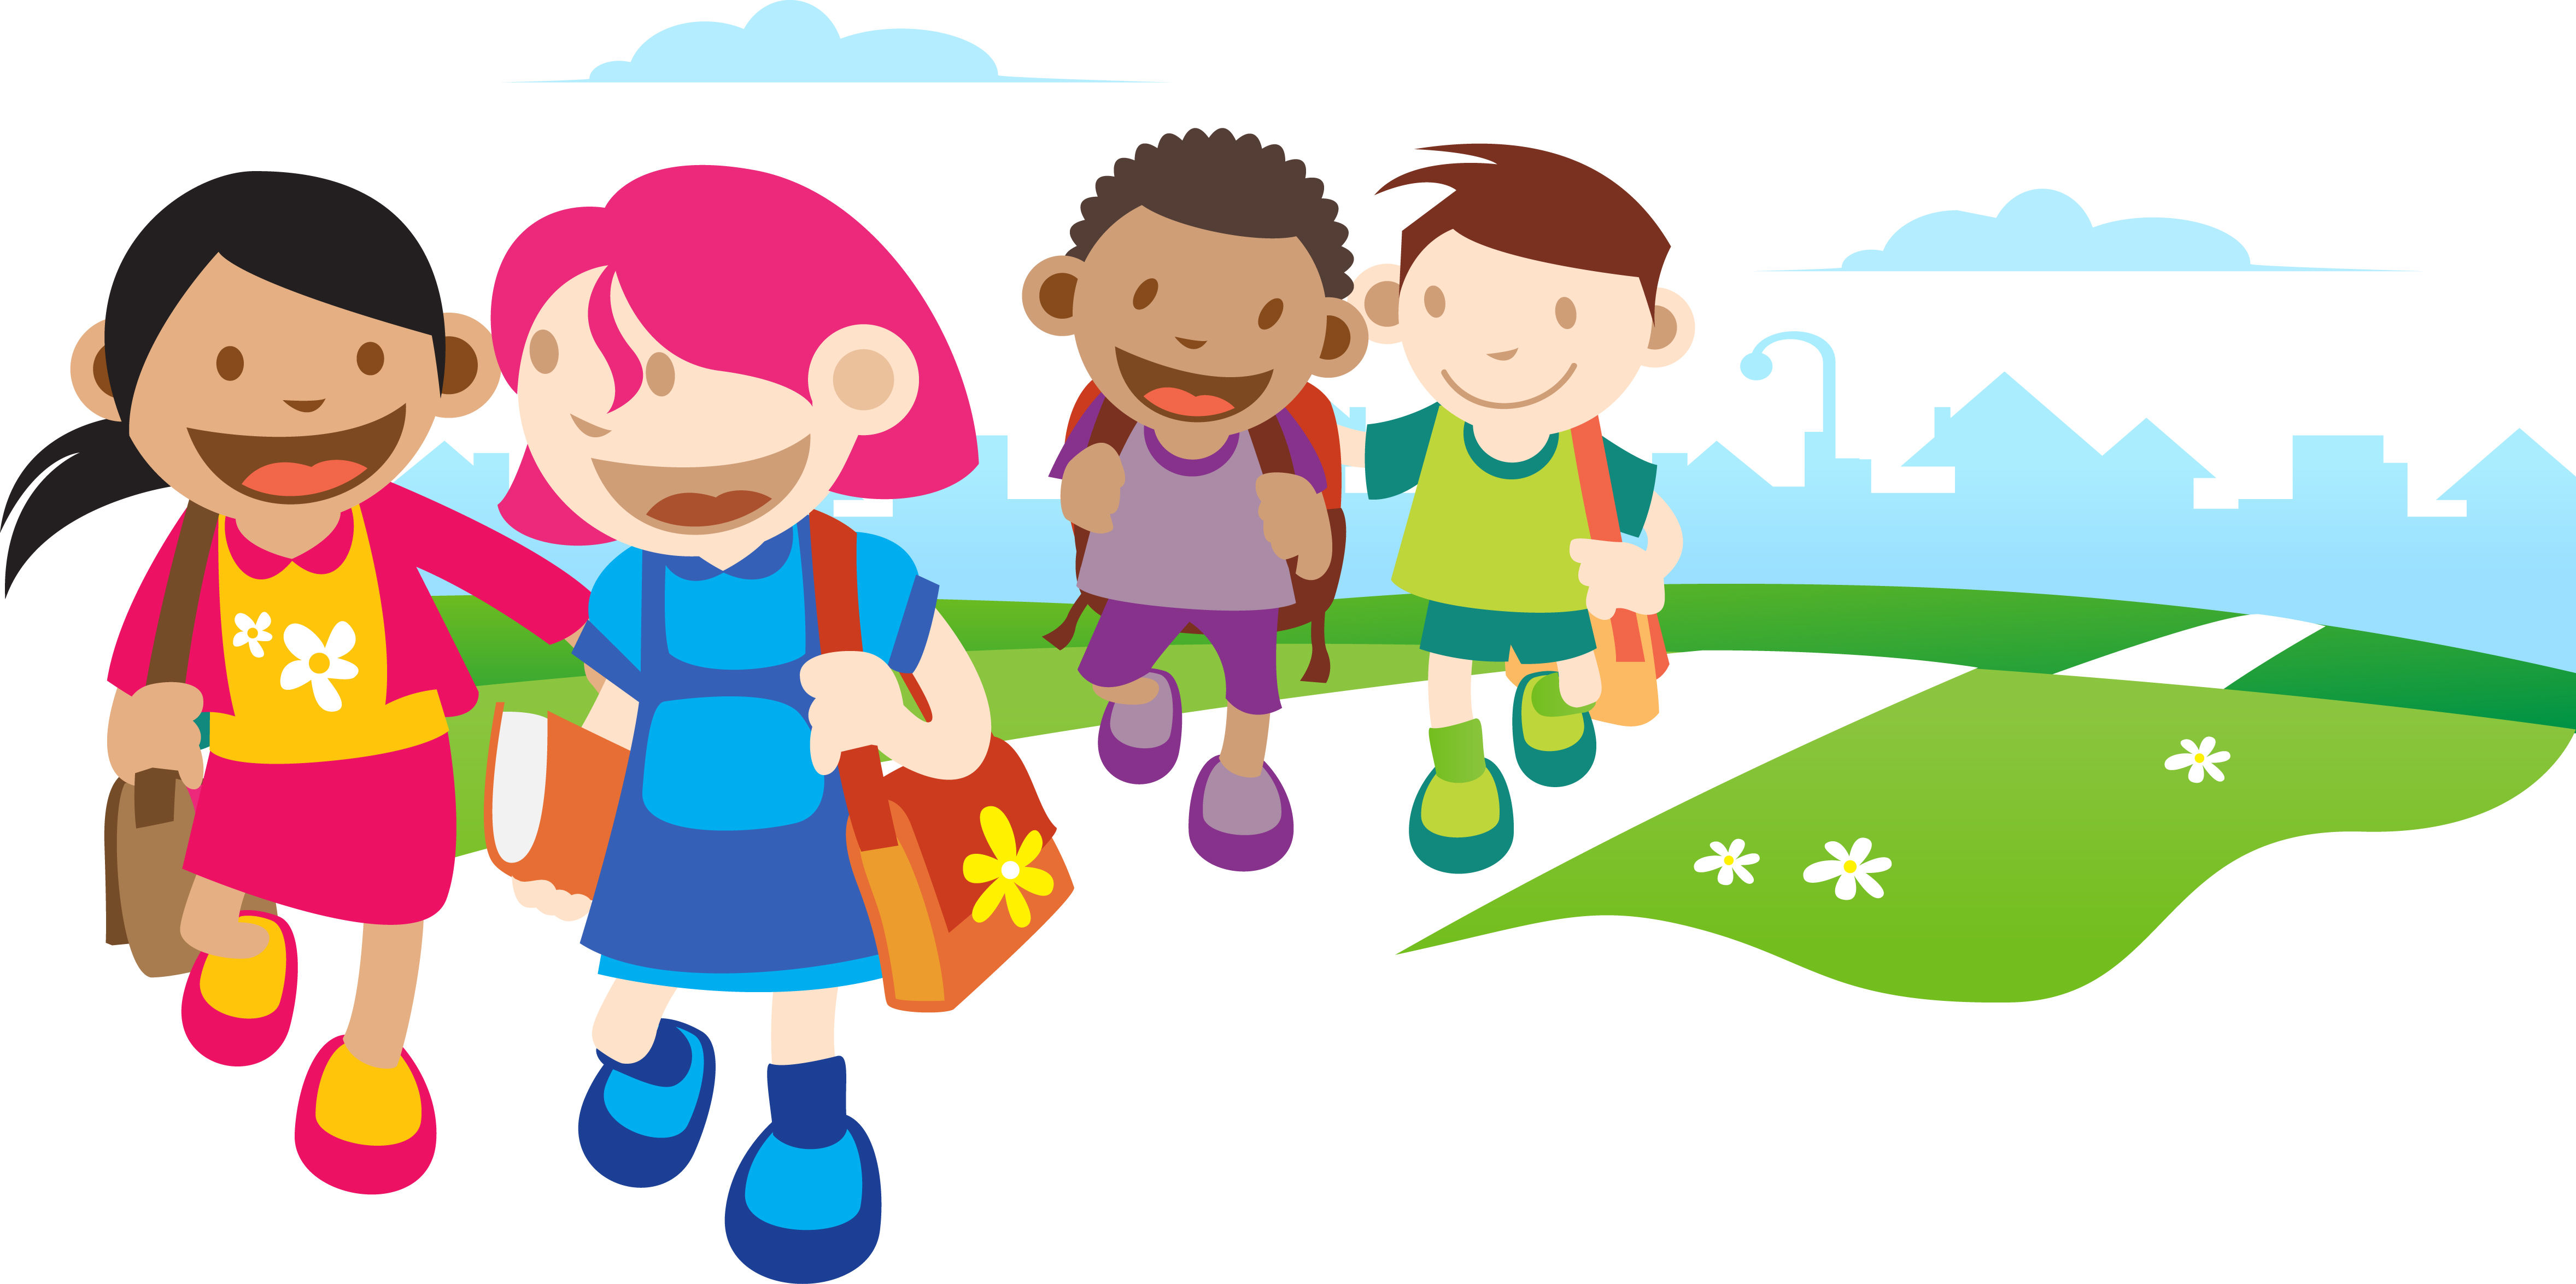 Children go to school clipart vector freeuse stock Kids Going To School Clipart | Free download best Kids Going To ... vector freeuse stock